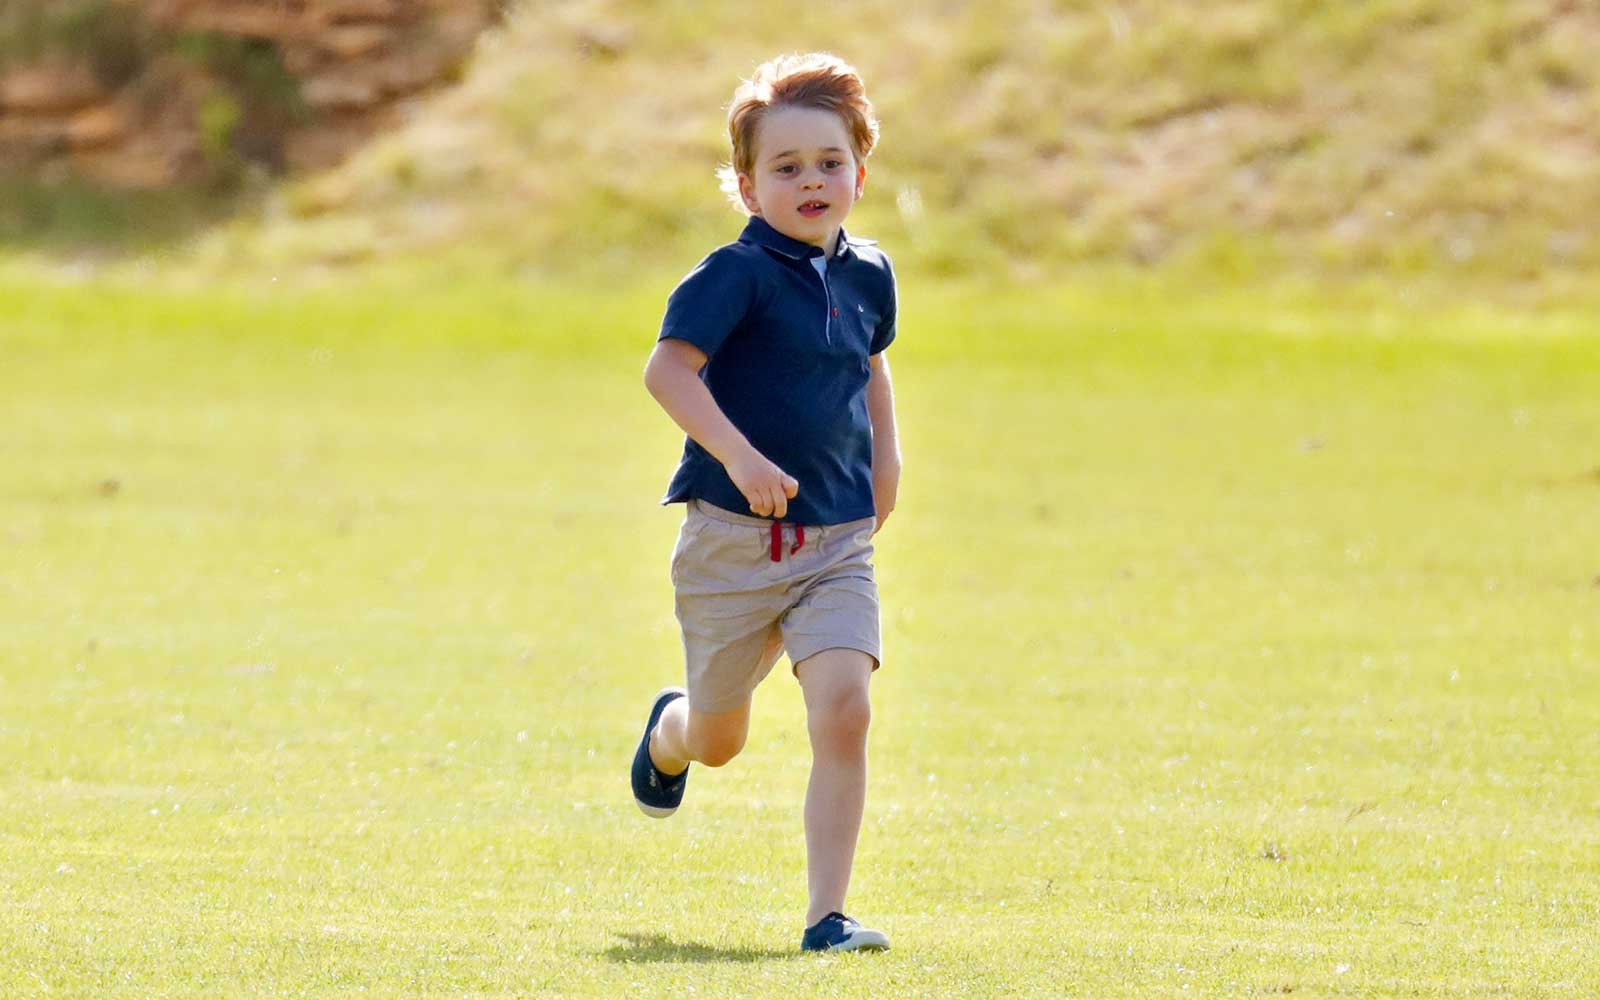 Prince Charles Planted an Entire Forest for Beloved Grandson Prince George